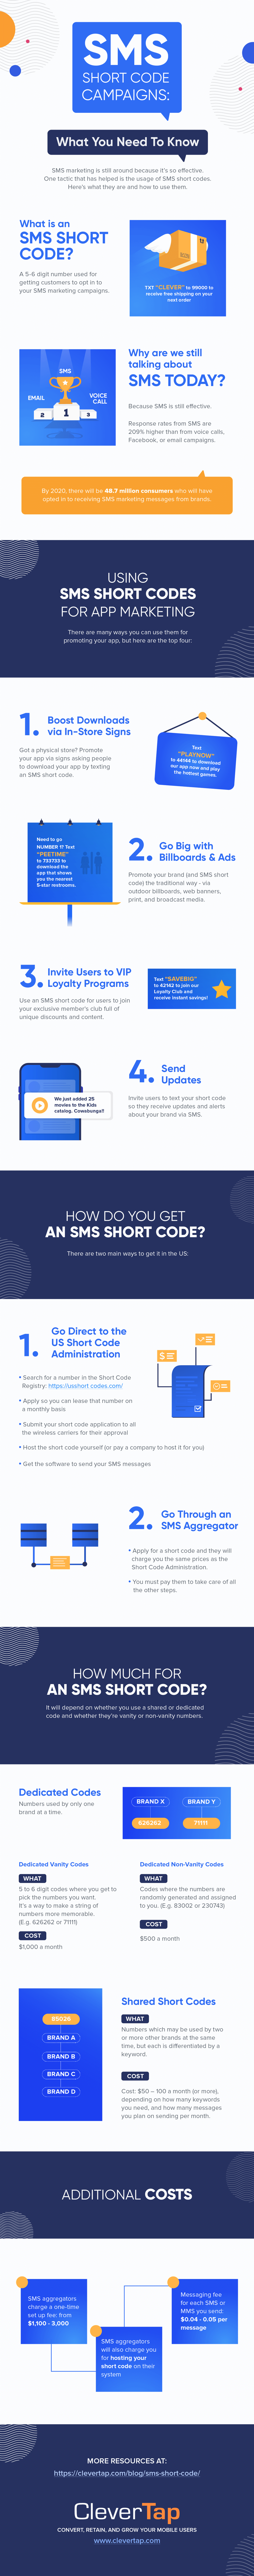 SMS Short Code infographic